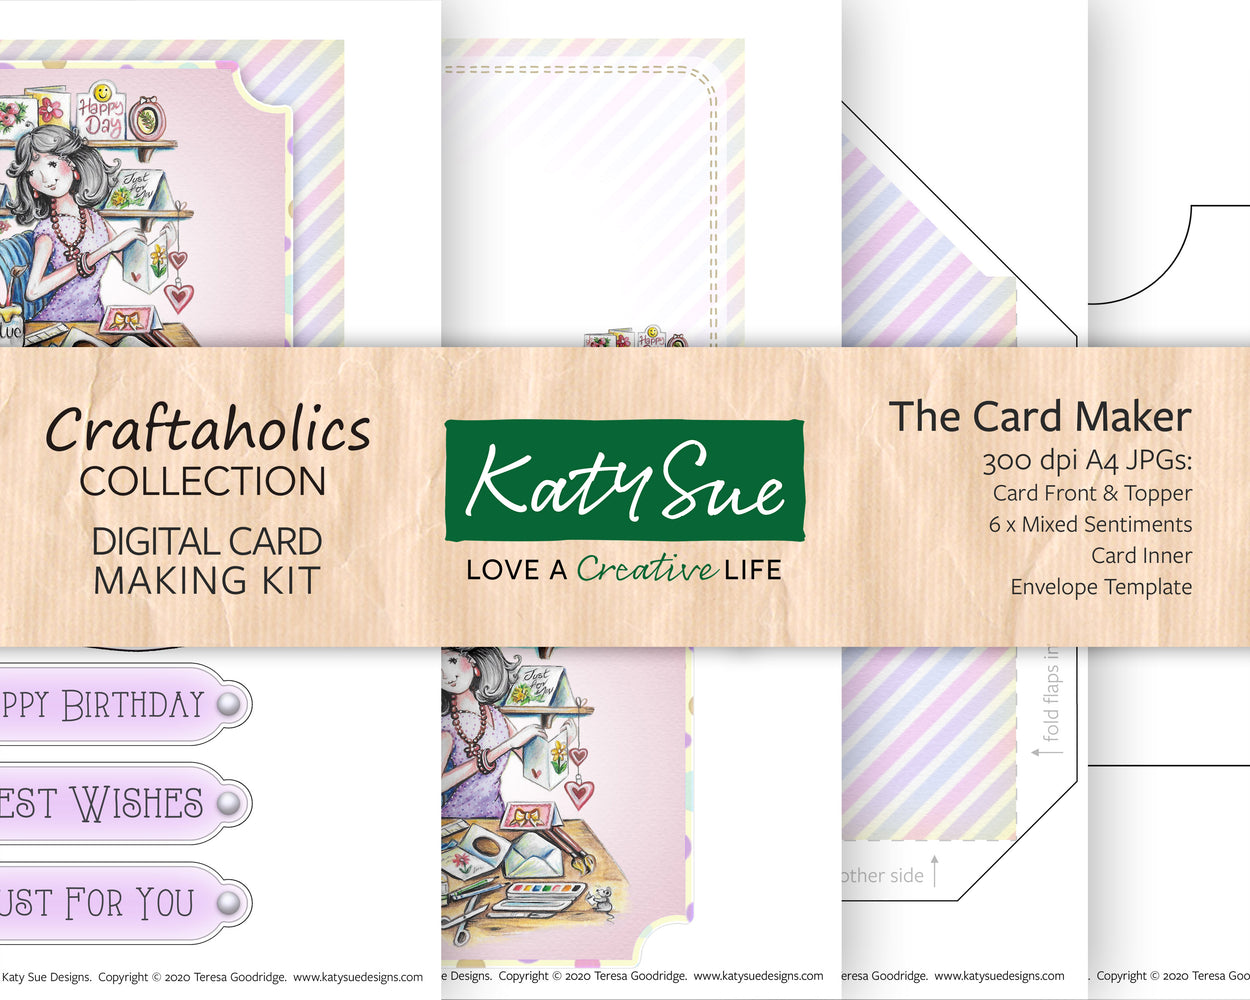 Craftaholics The Card Maker | Digital Card Making Kit